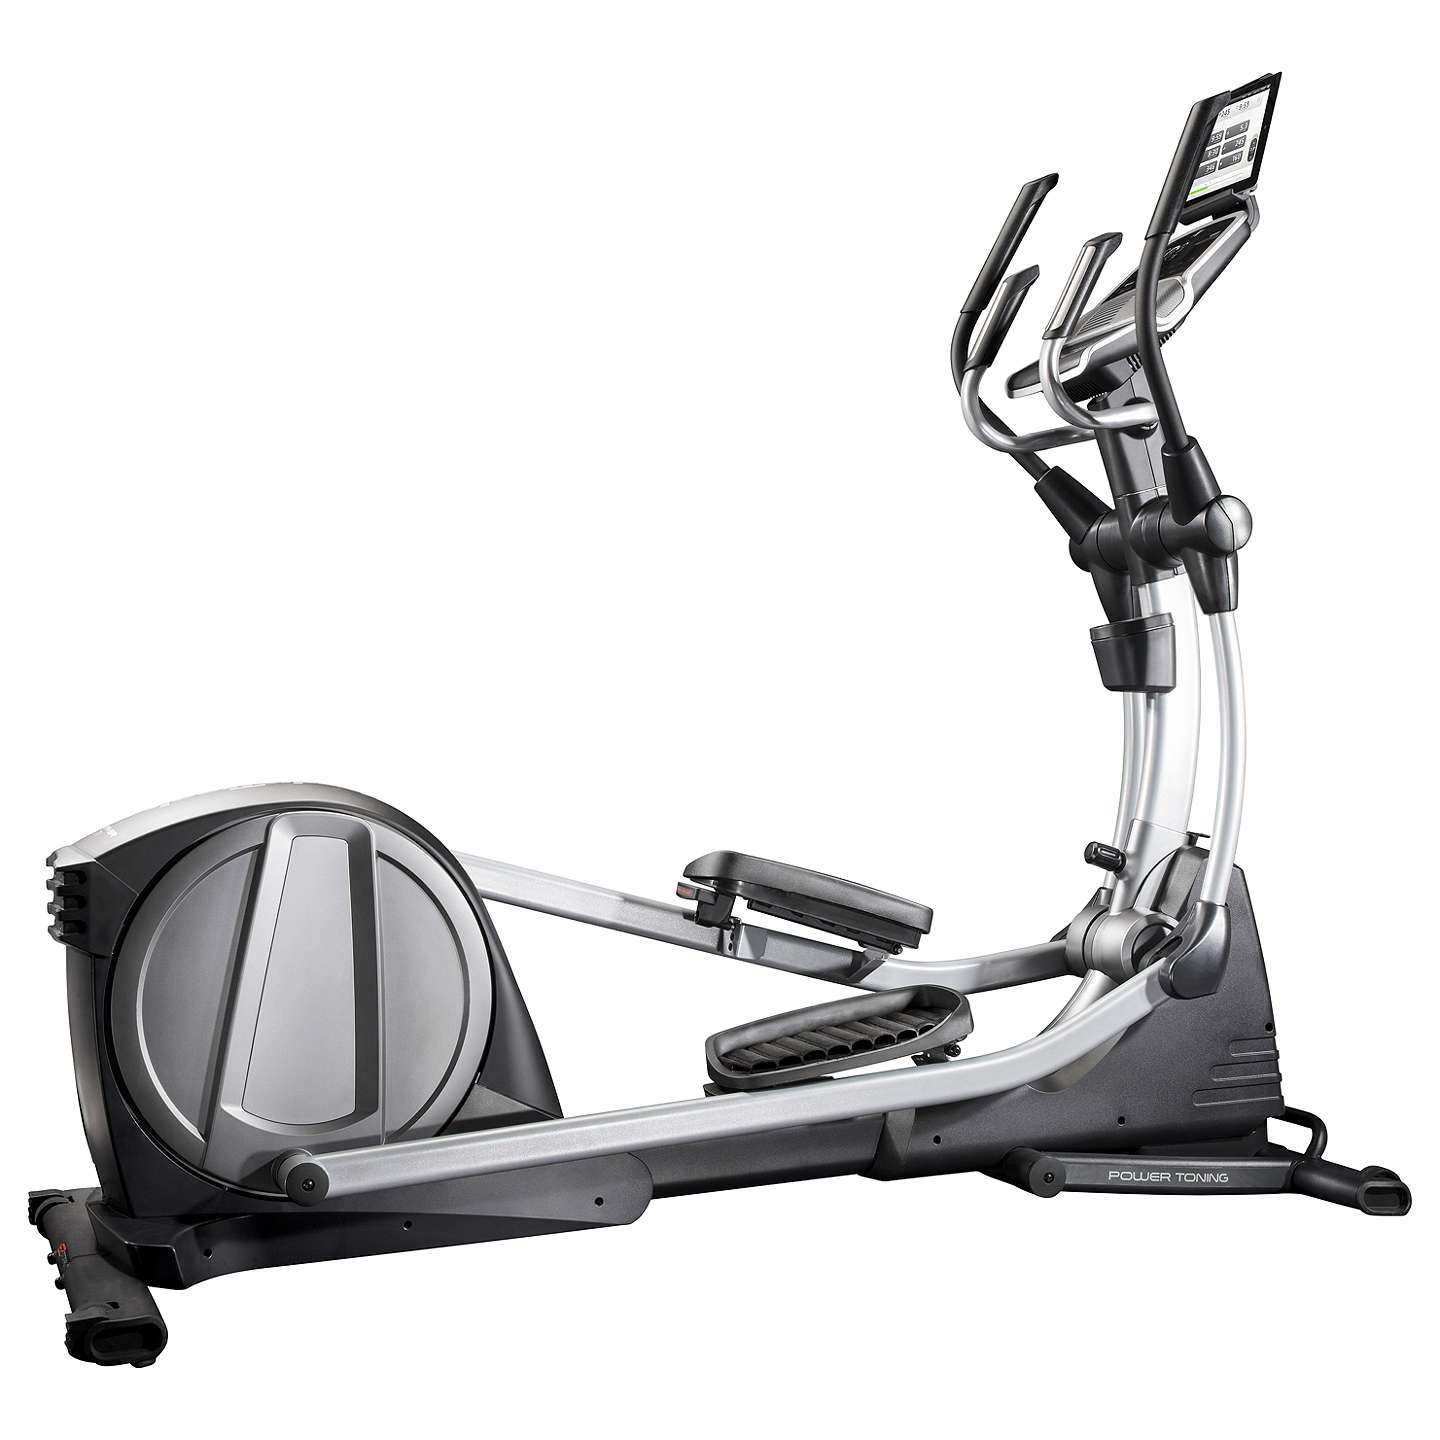 NordicTrack SpaceSaver SE7i Folding Elliptical Cross